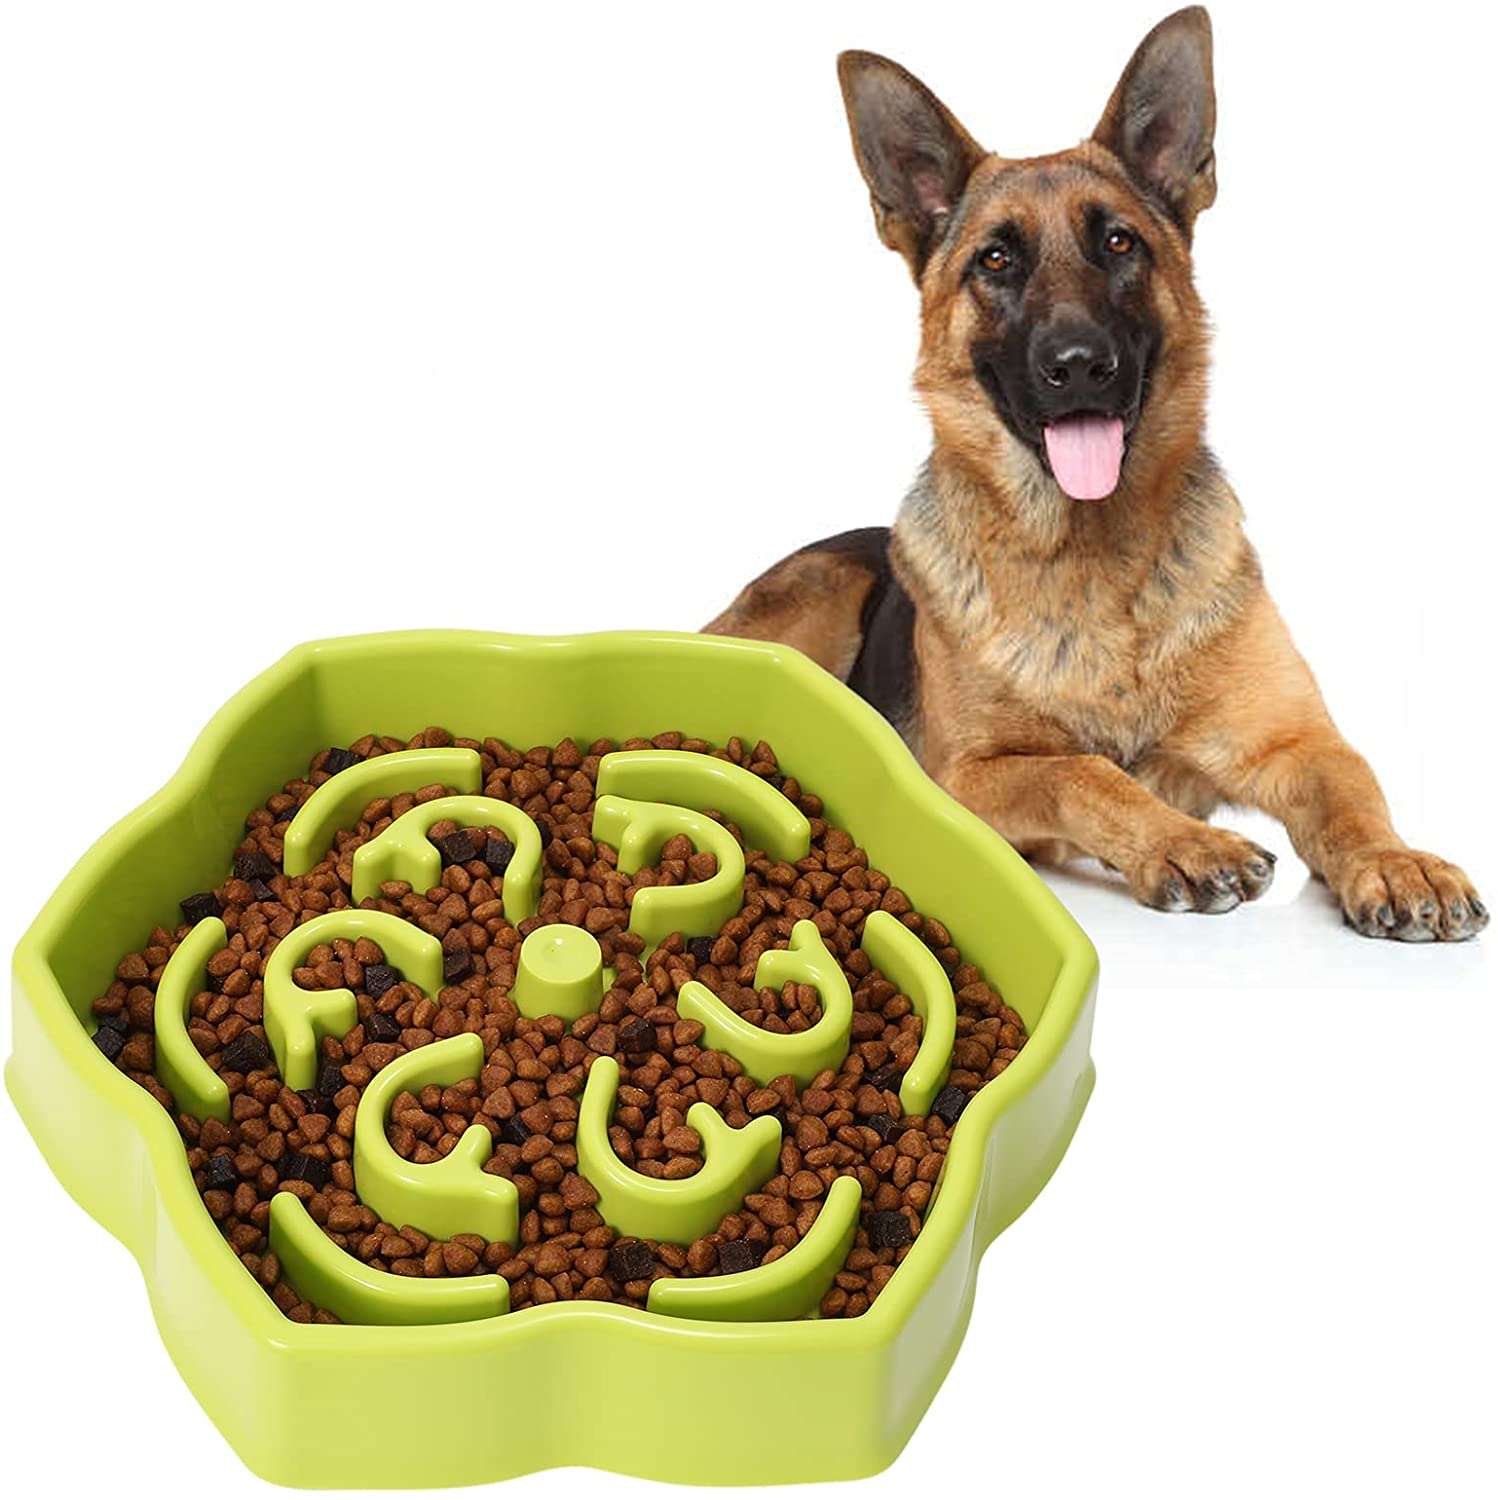 Fantastic Product! Perfect for my Dog!